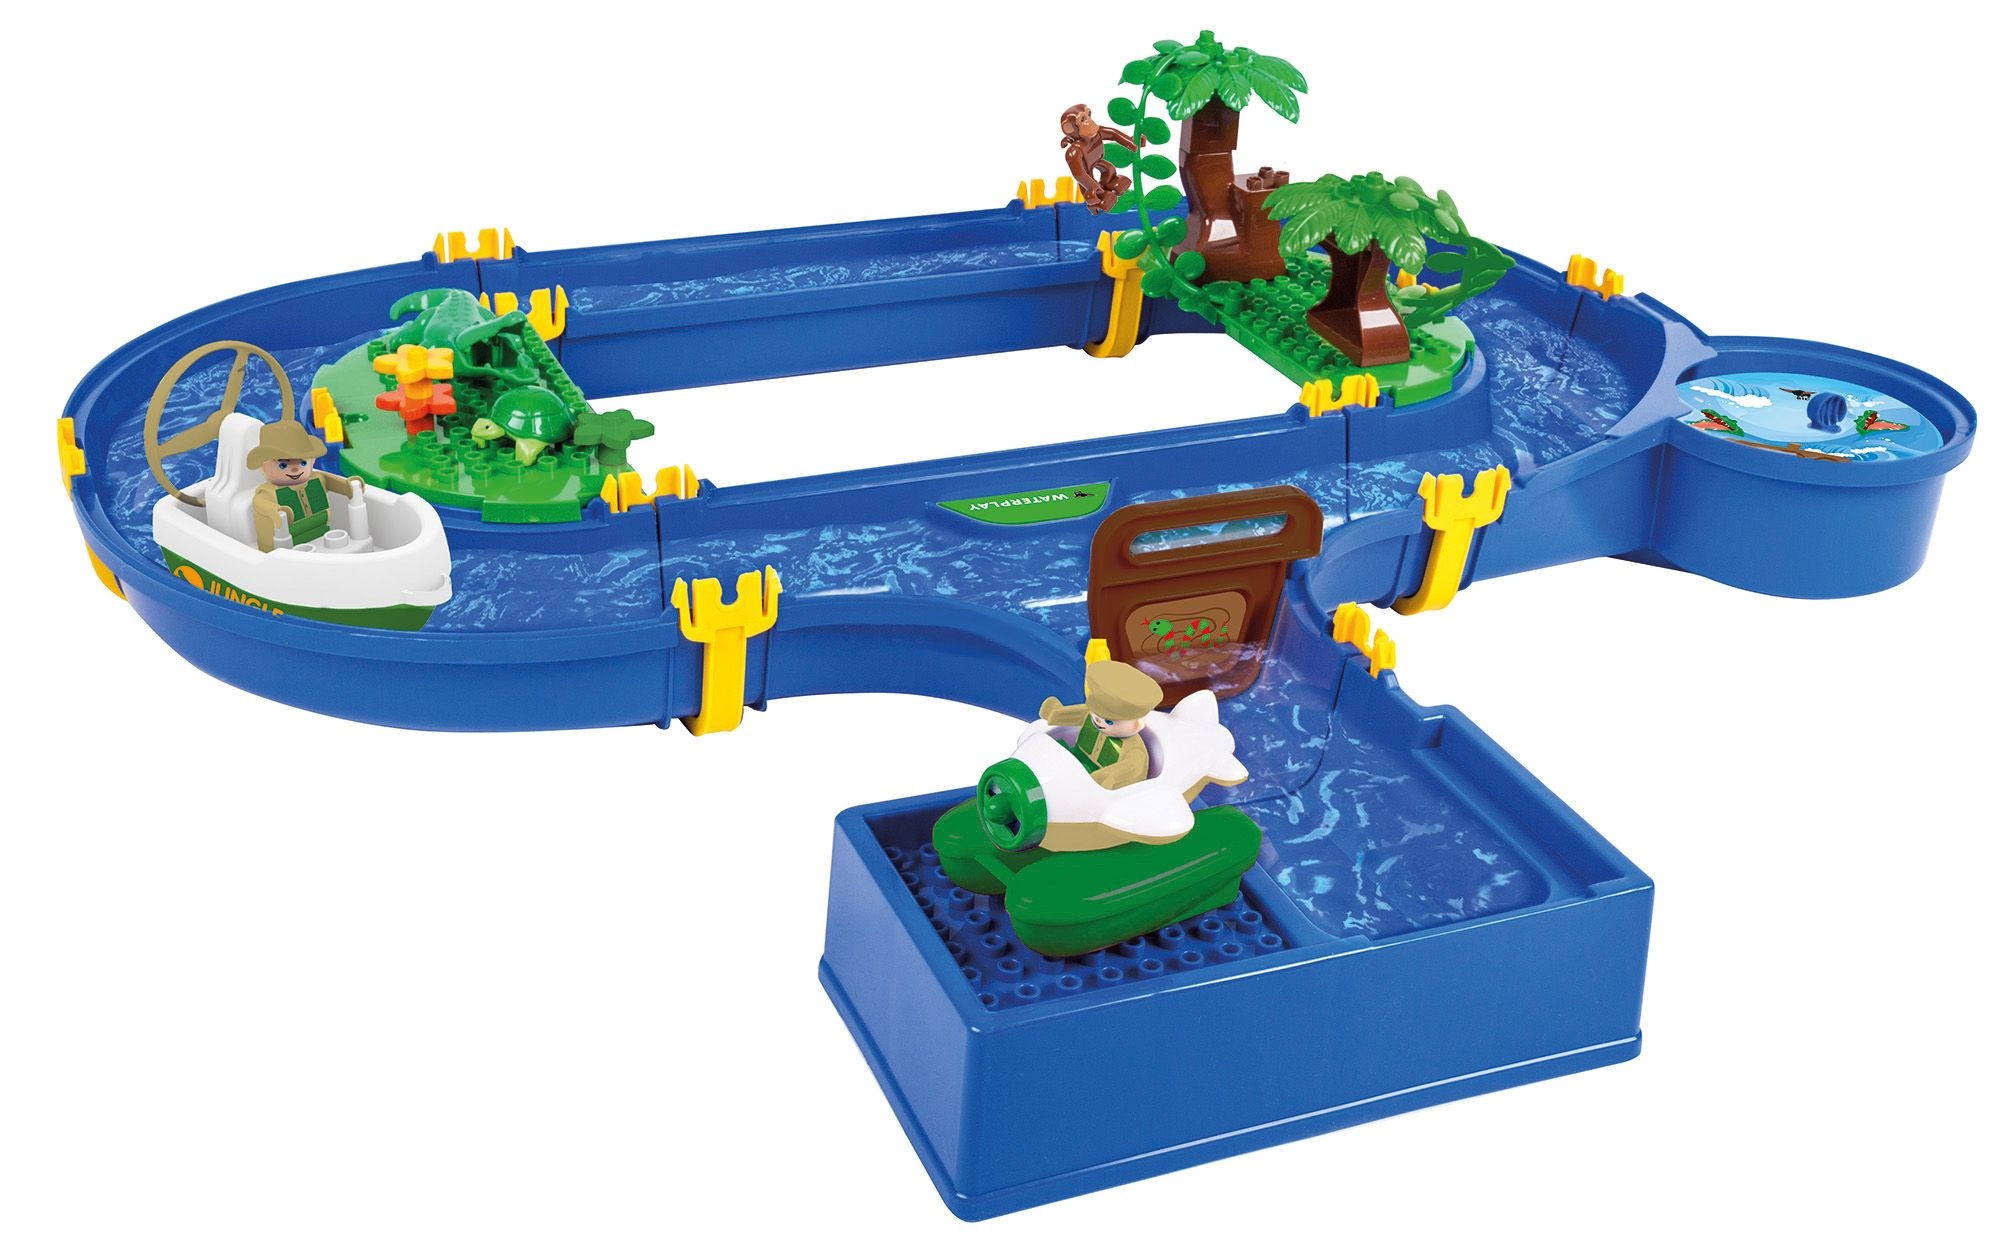 BIG  Wasserbahn mit Wasserturbine, » Waterplay Jungle Adventure« (32tlg.)